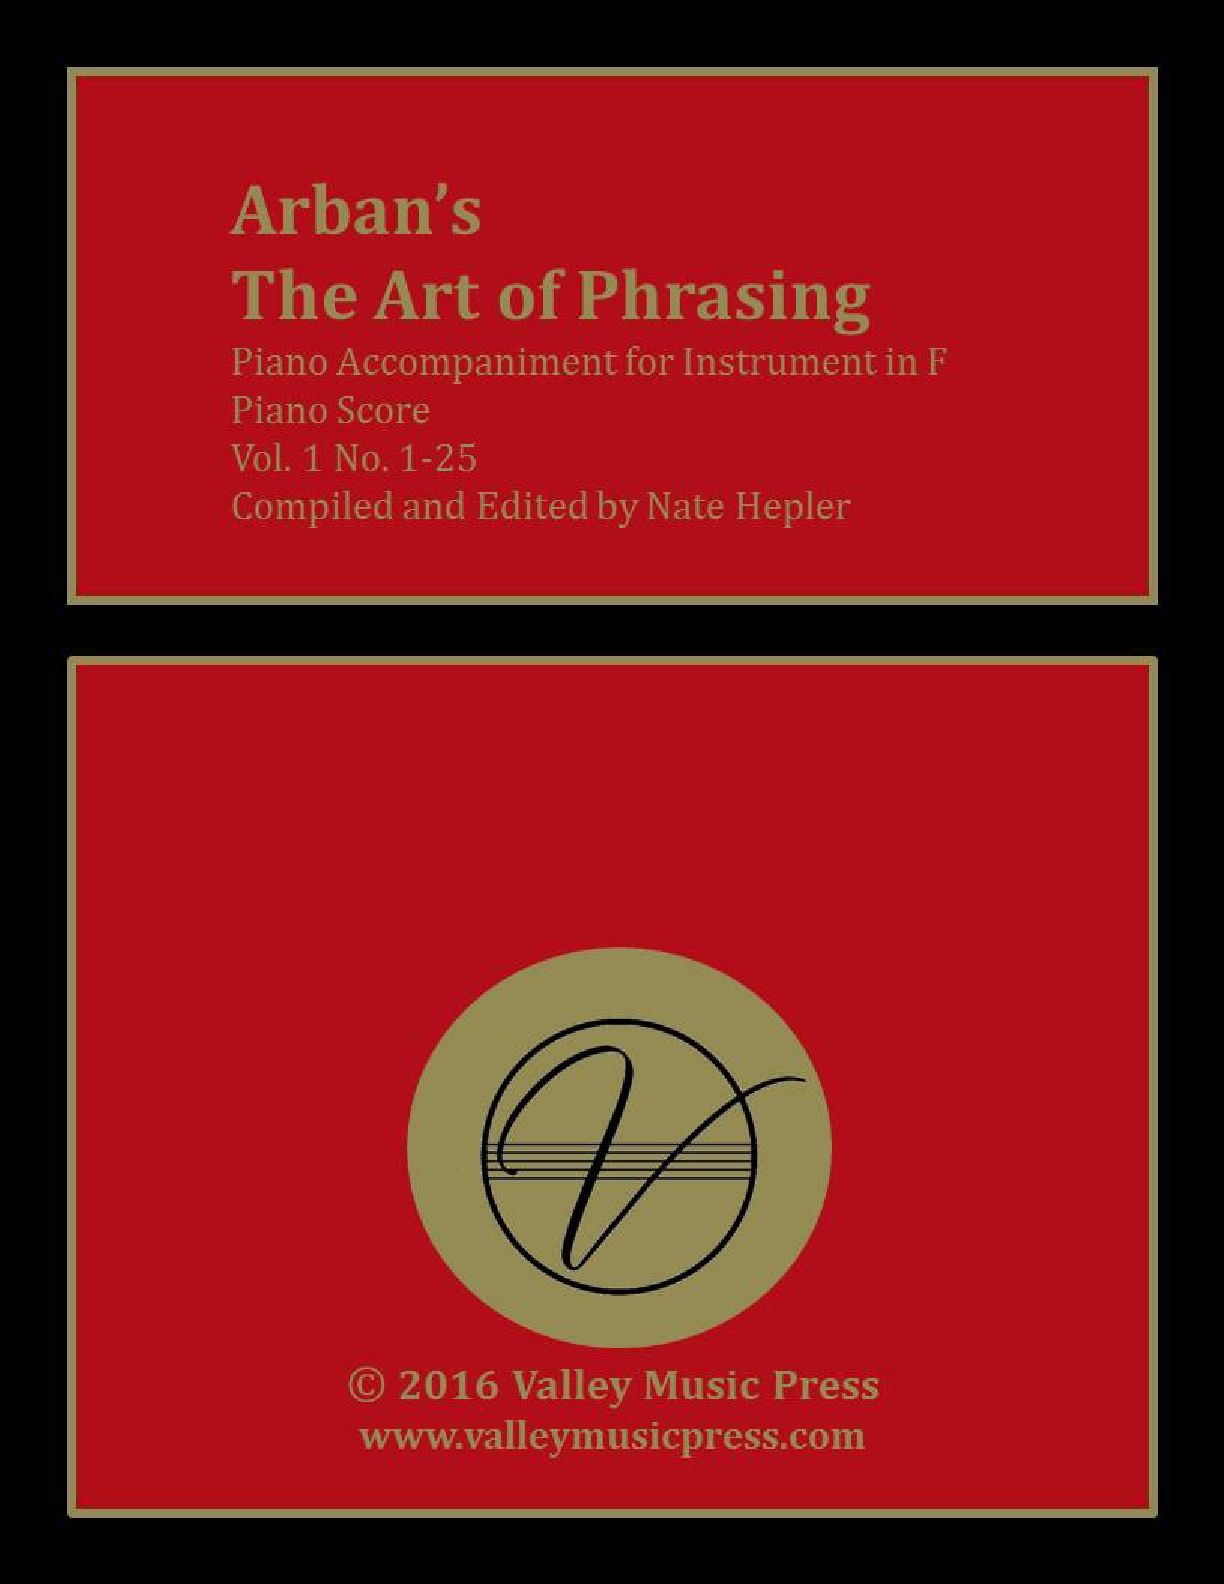 Arban Art of Phrasing Piano Accompaniment Vol. 1 No. 1-25 (Hrn) - Click Image to Close